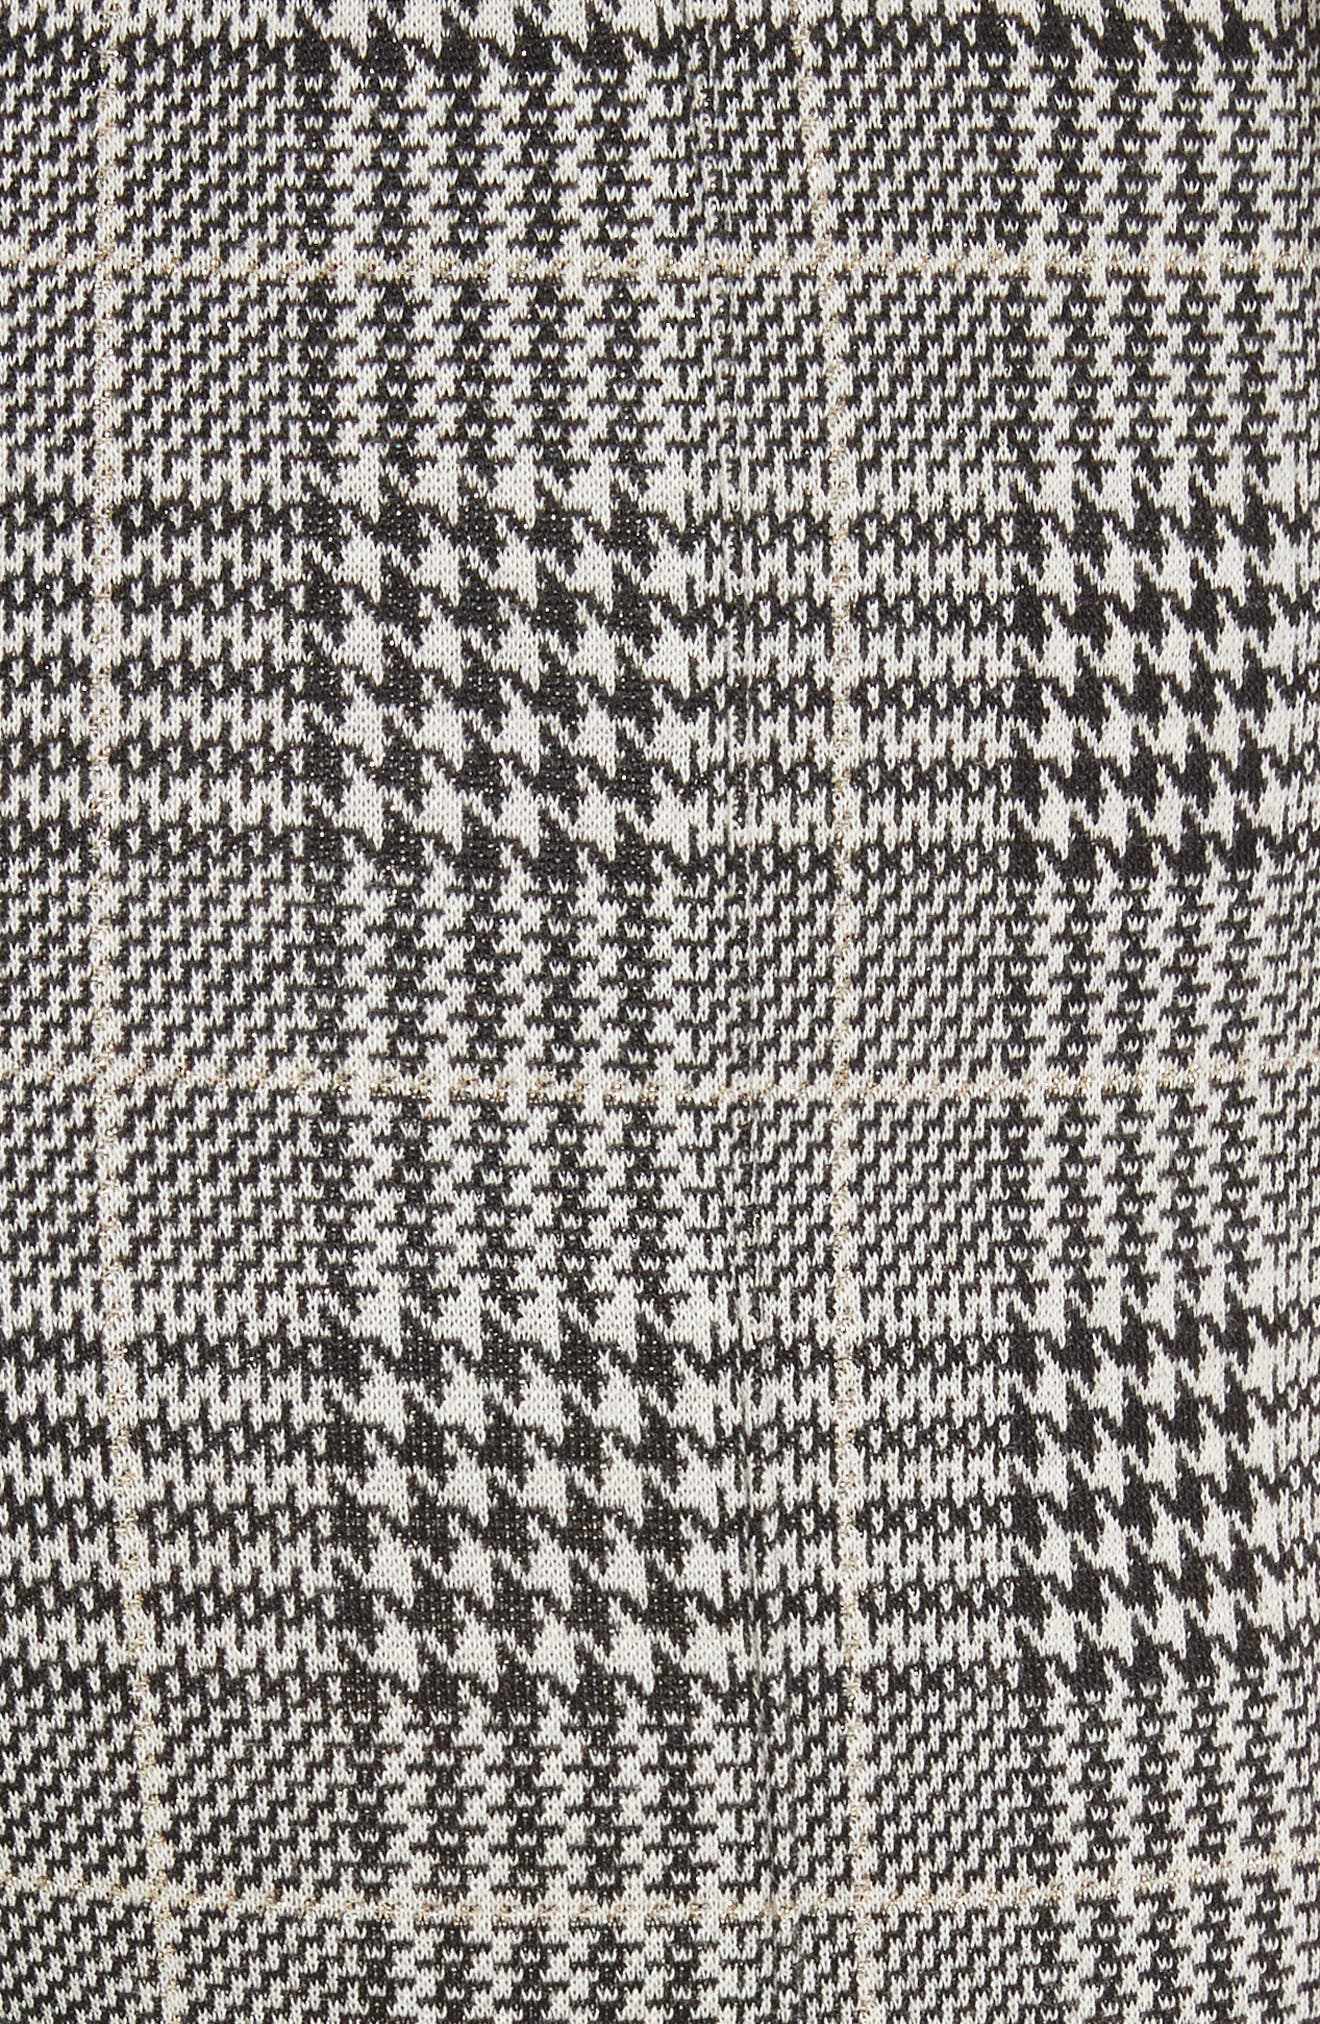 Houndstooth Ankle Skinny Pants,                             Alternate thumbnail 5, color,